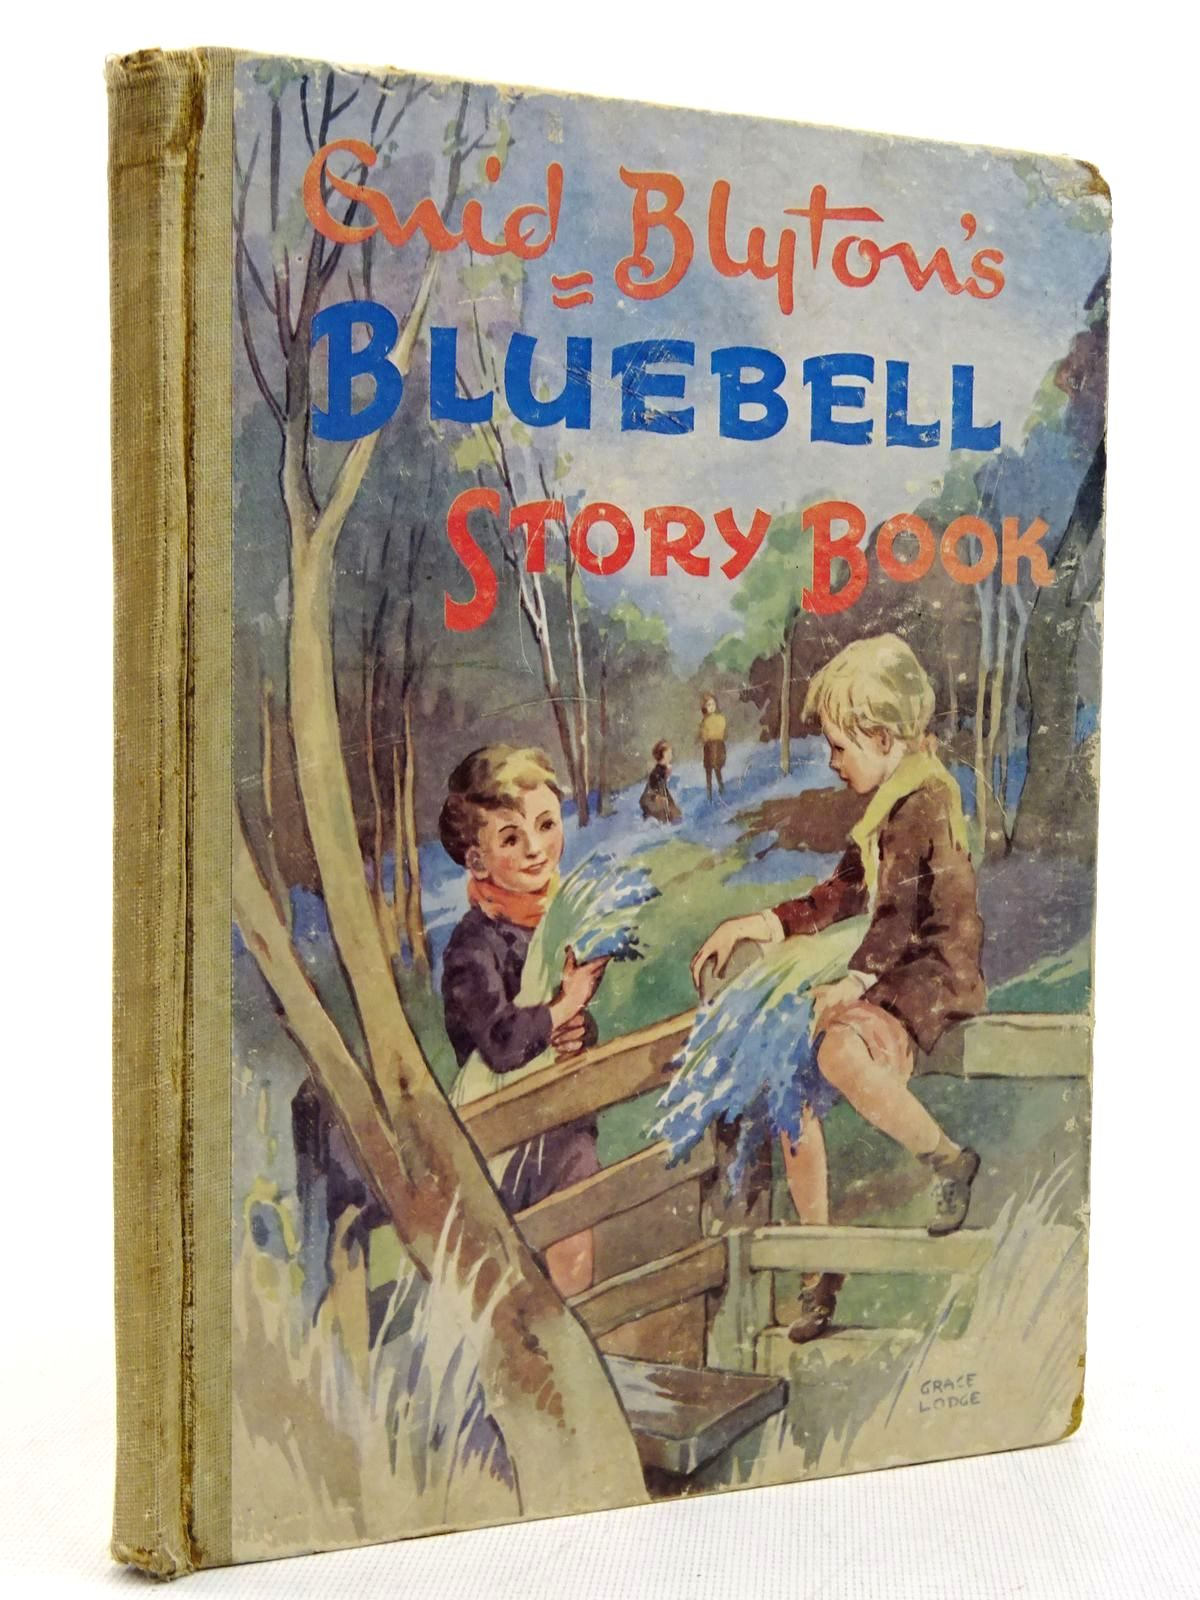 Photo of ENID BLYTON'S BLUEBELL STORY BOOK written by Blyton, Enid illustrated by Lodge, Grace published by Latimer House Ltd. (STOCK CODE: 2129334)  for sale by Stella & Rose's Books